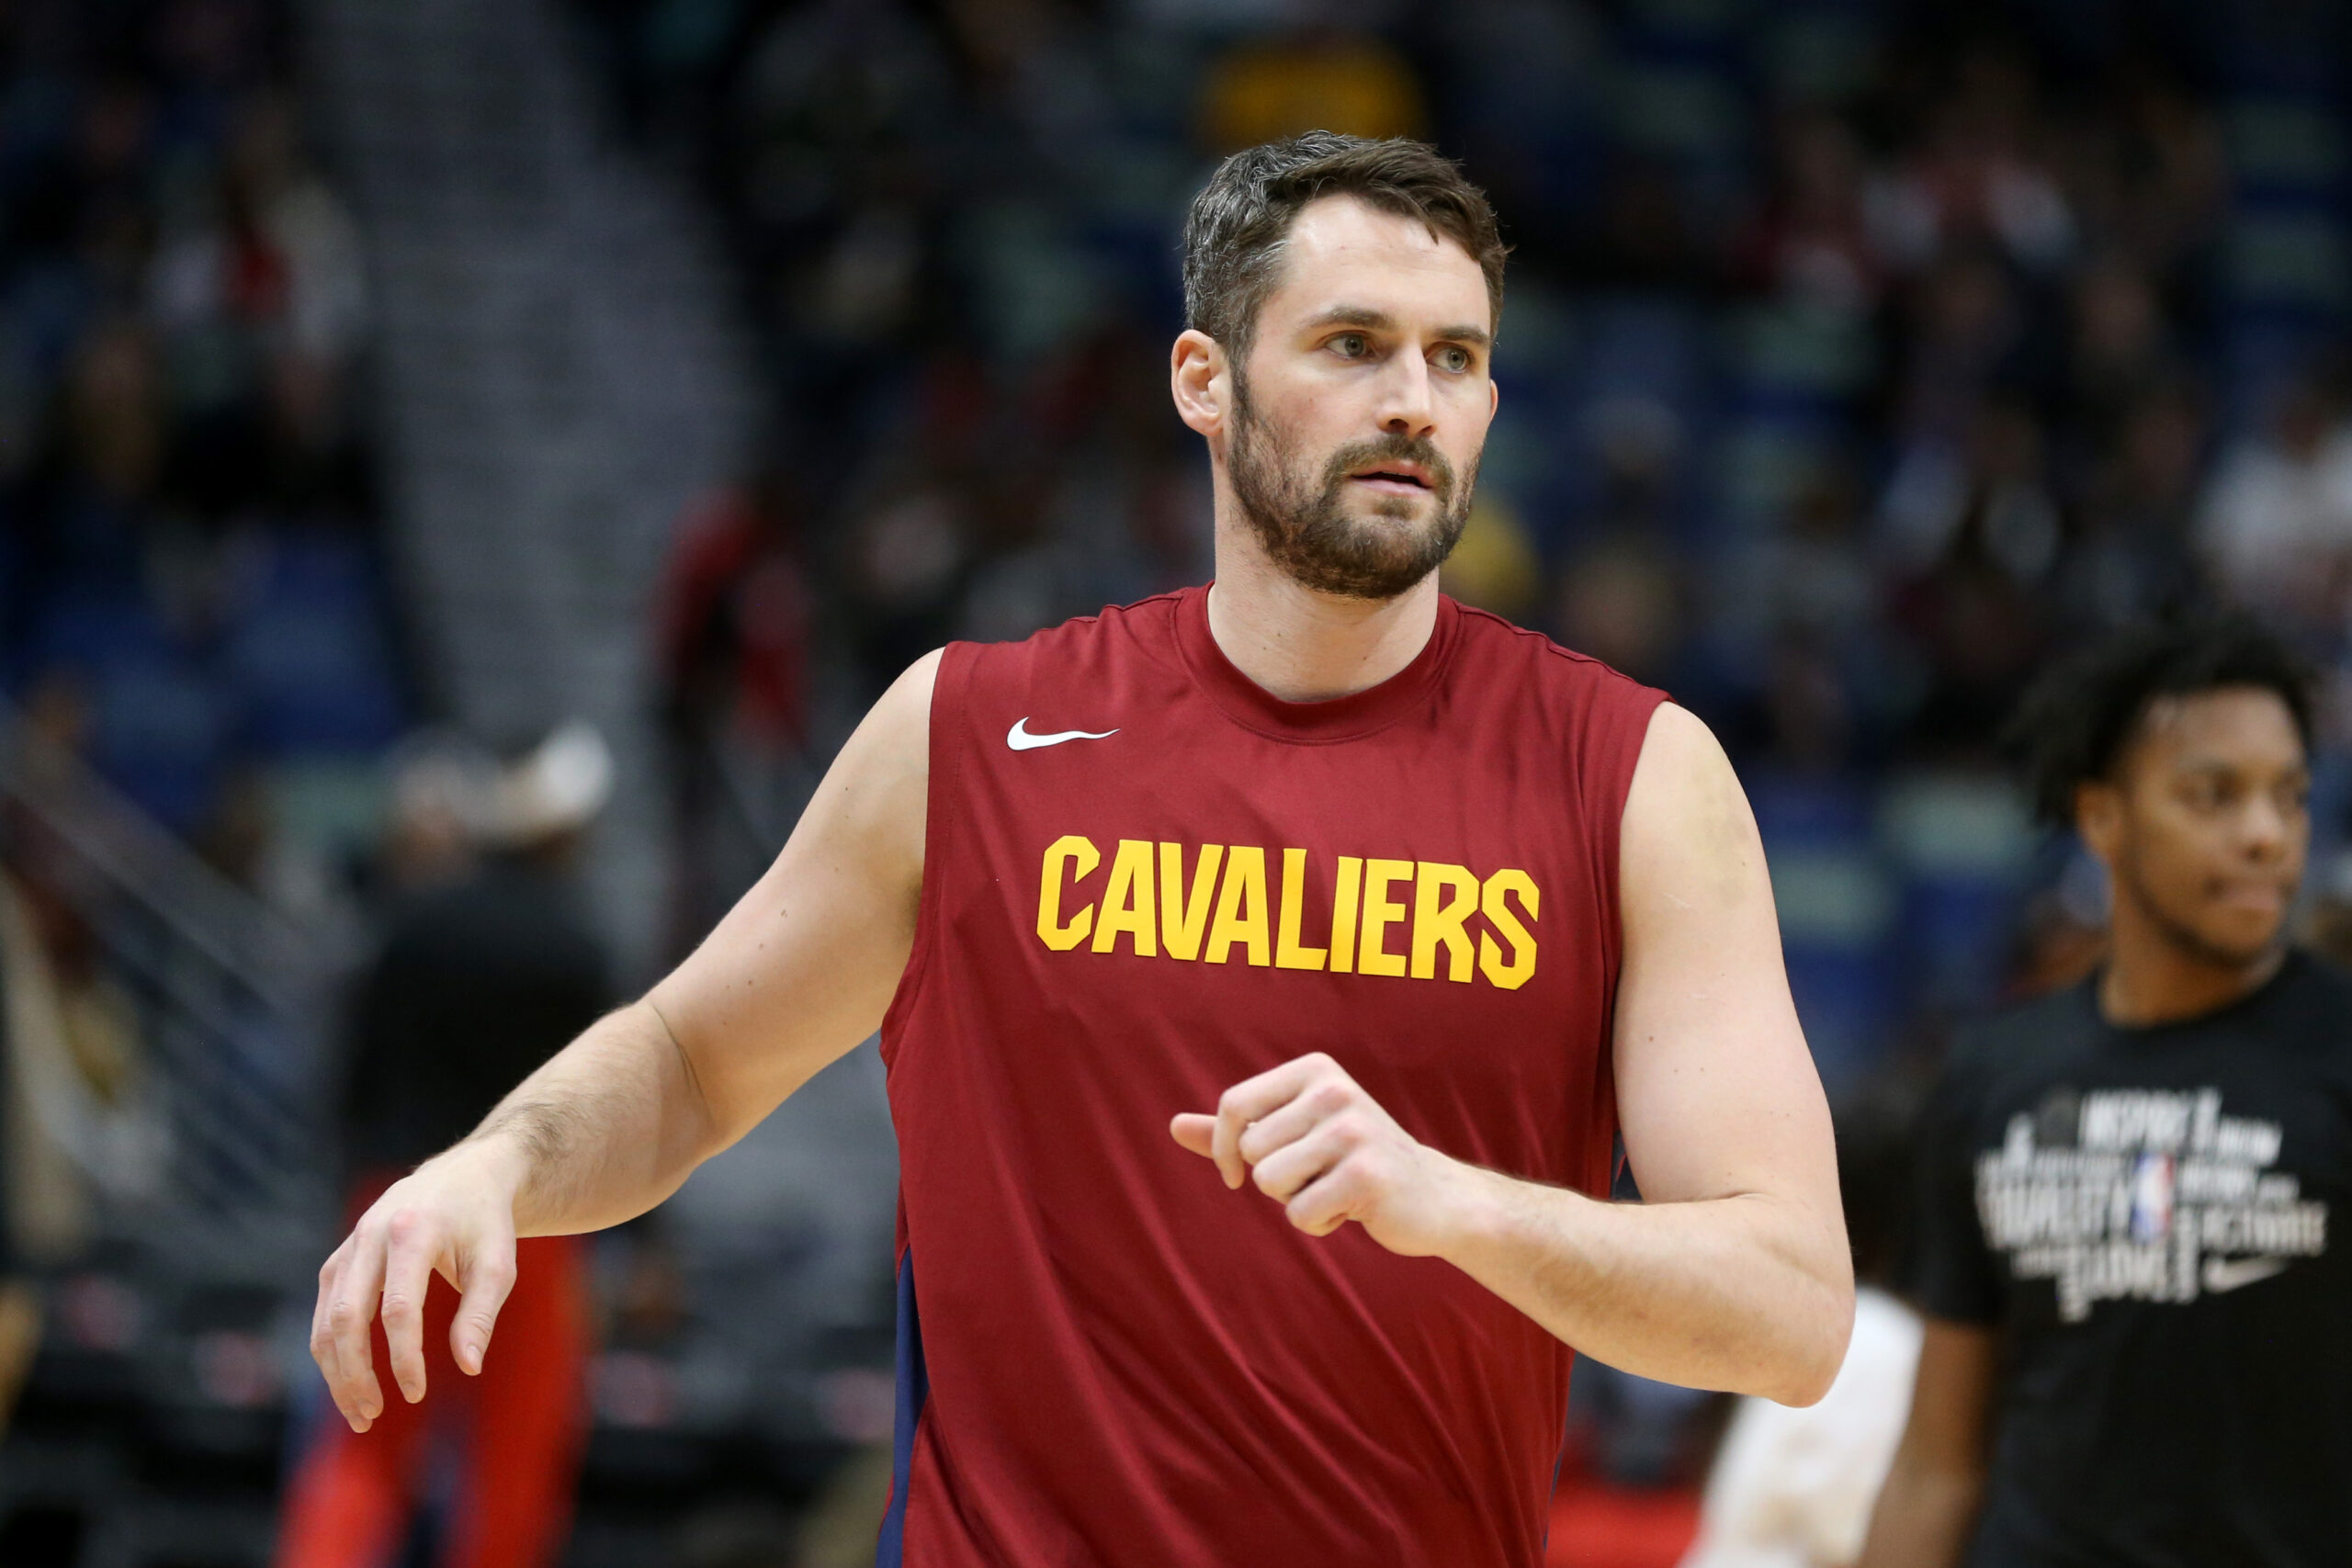 Cavaliers' Love to miss season opener with calf strain